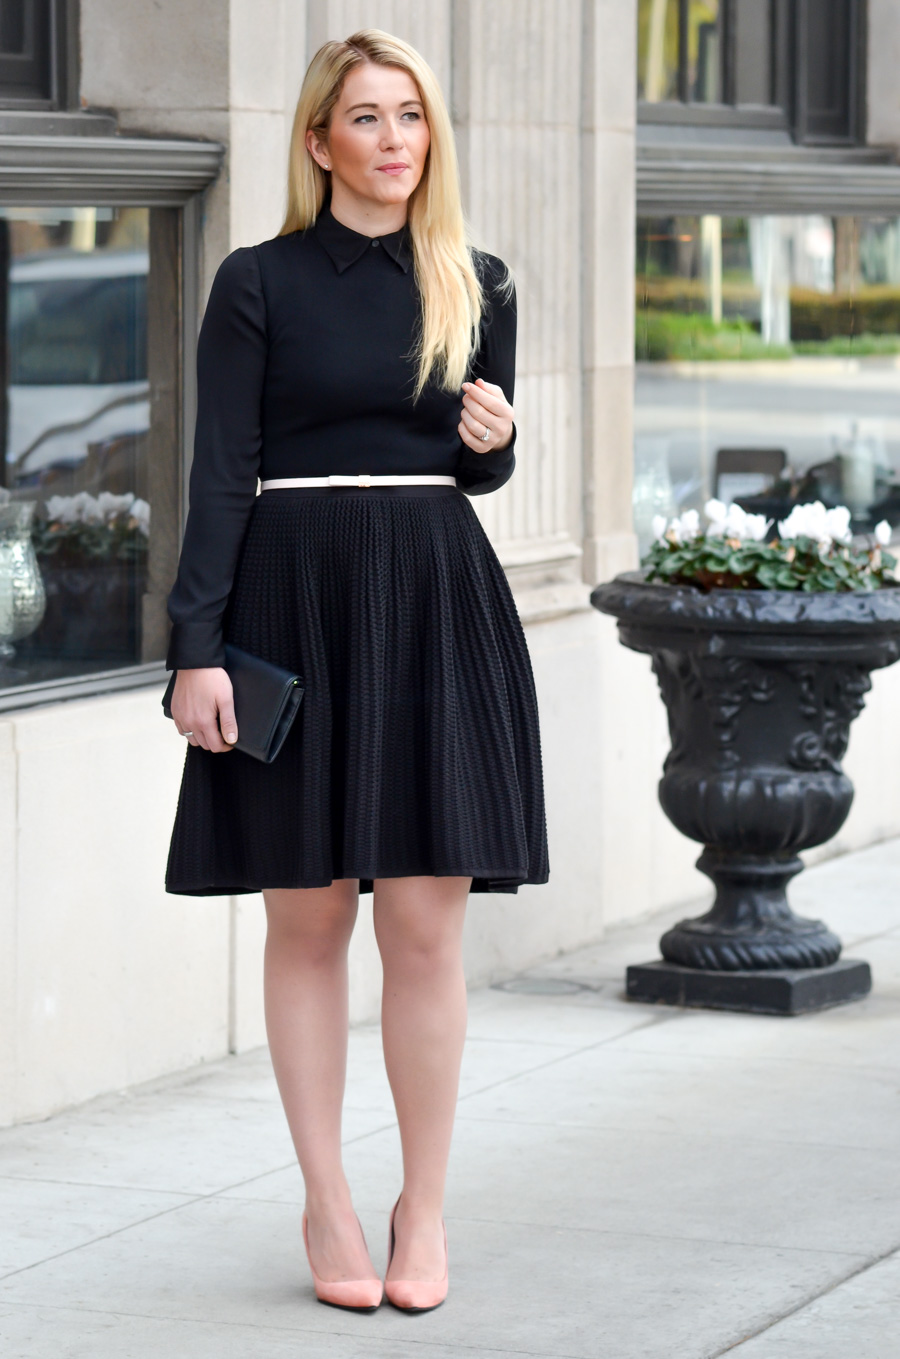 Button Front Shirt Under Dress Outfit